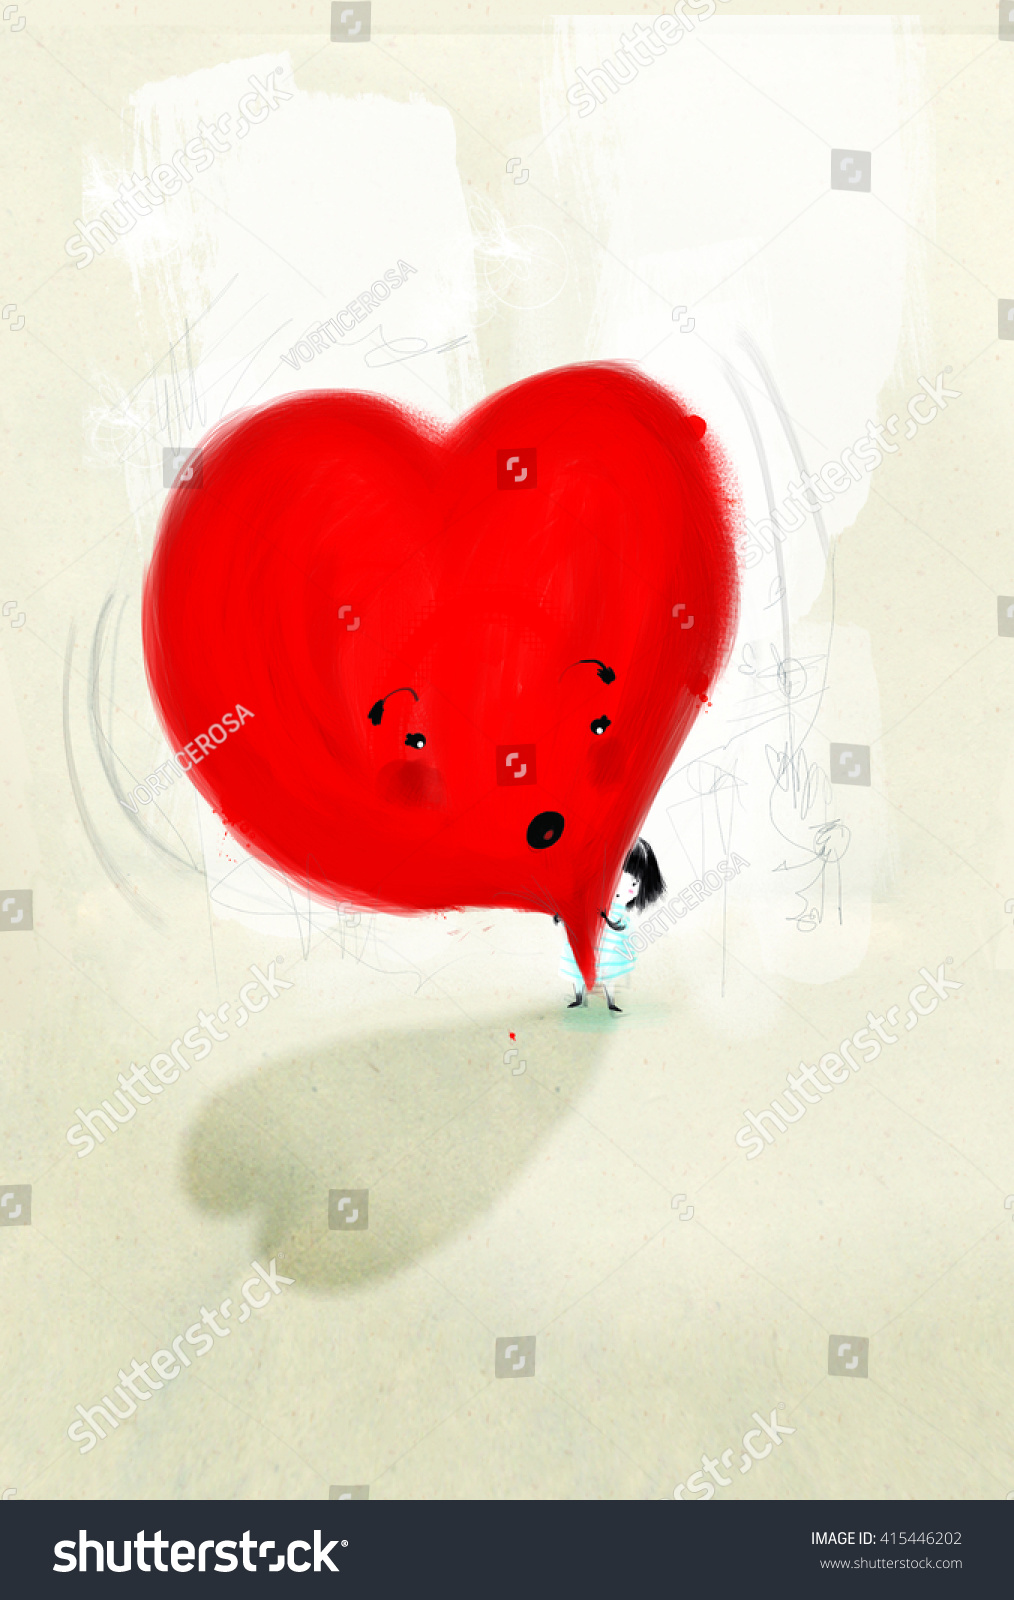 Digital Media / San Valentine/ Little Girl Playes With Heart